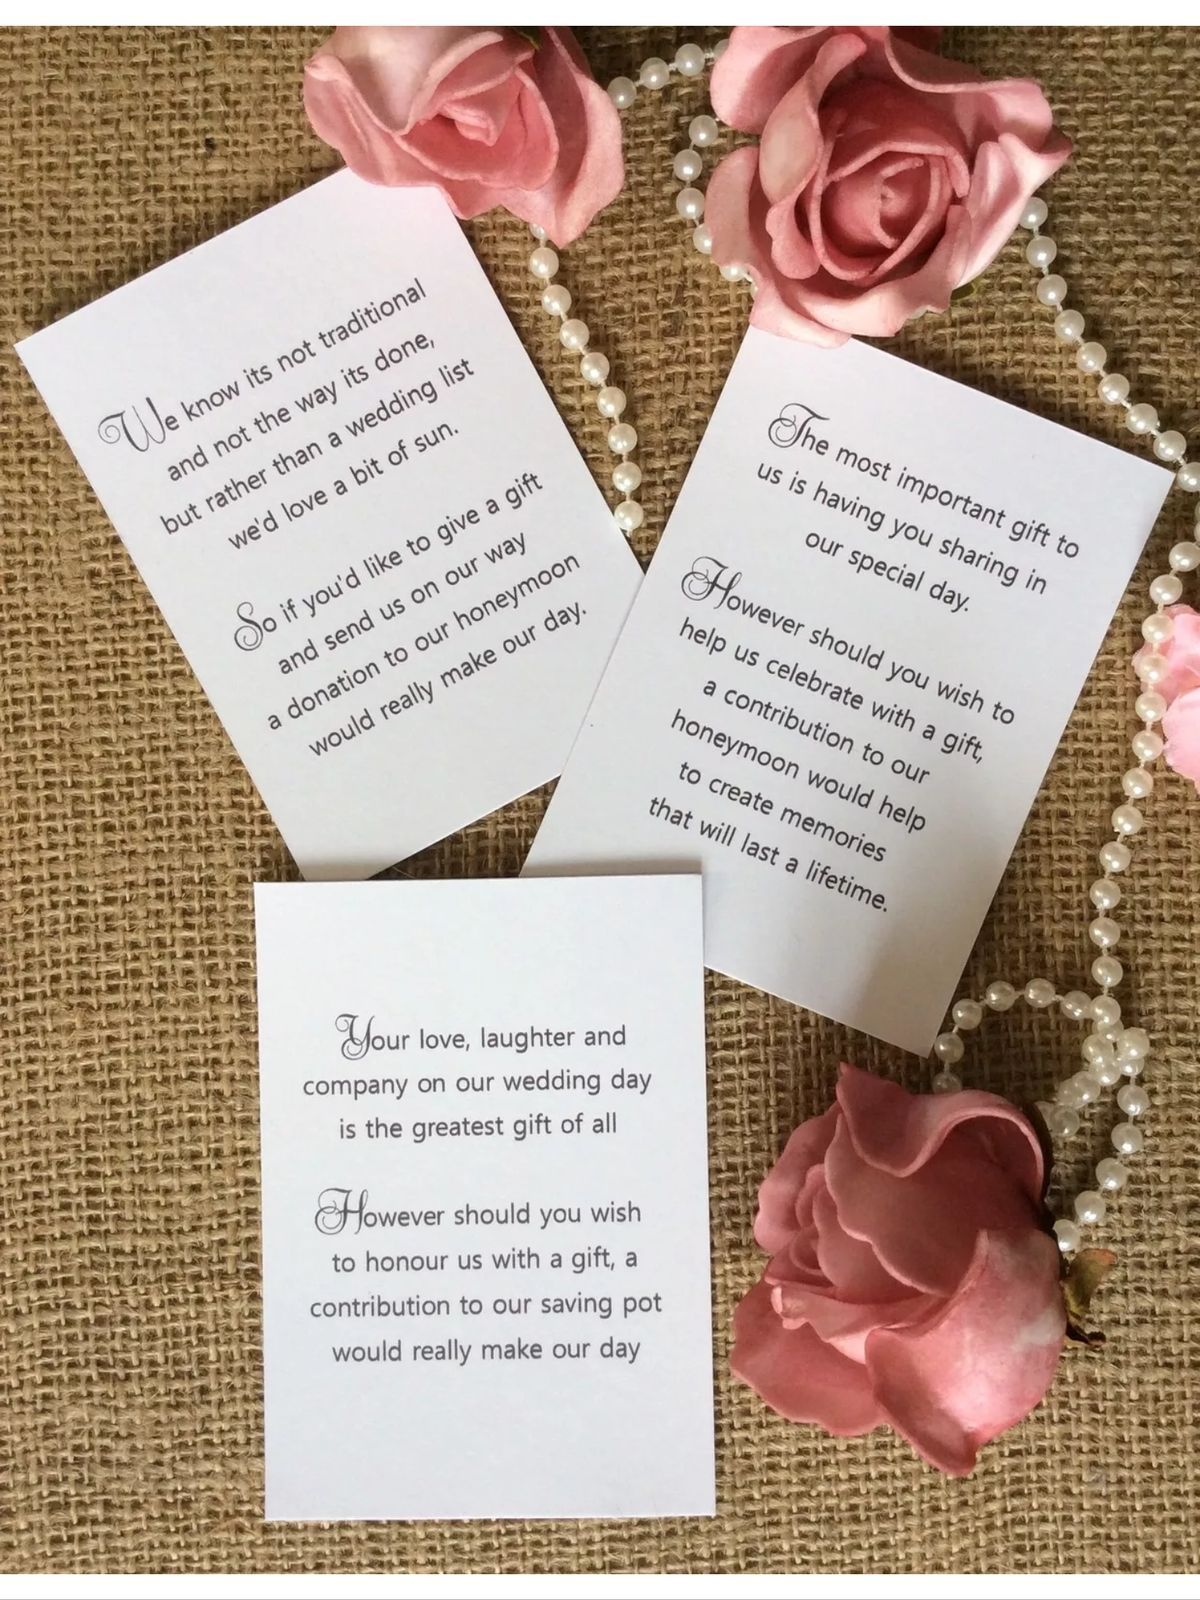 Details about 25 50 wedding gift money poem small cards